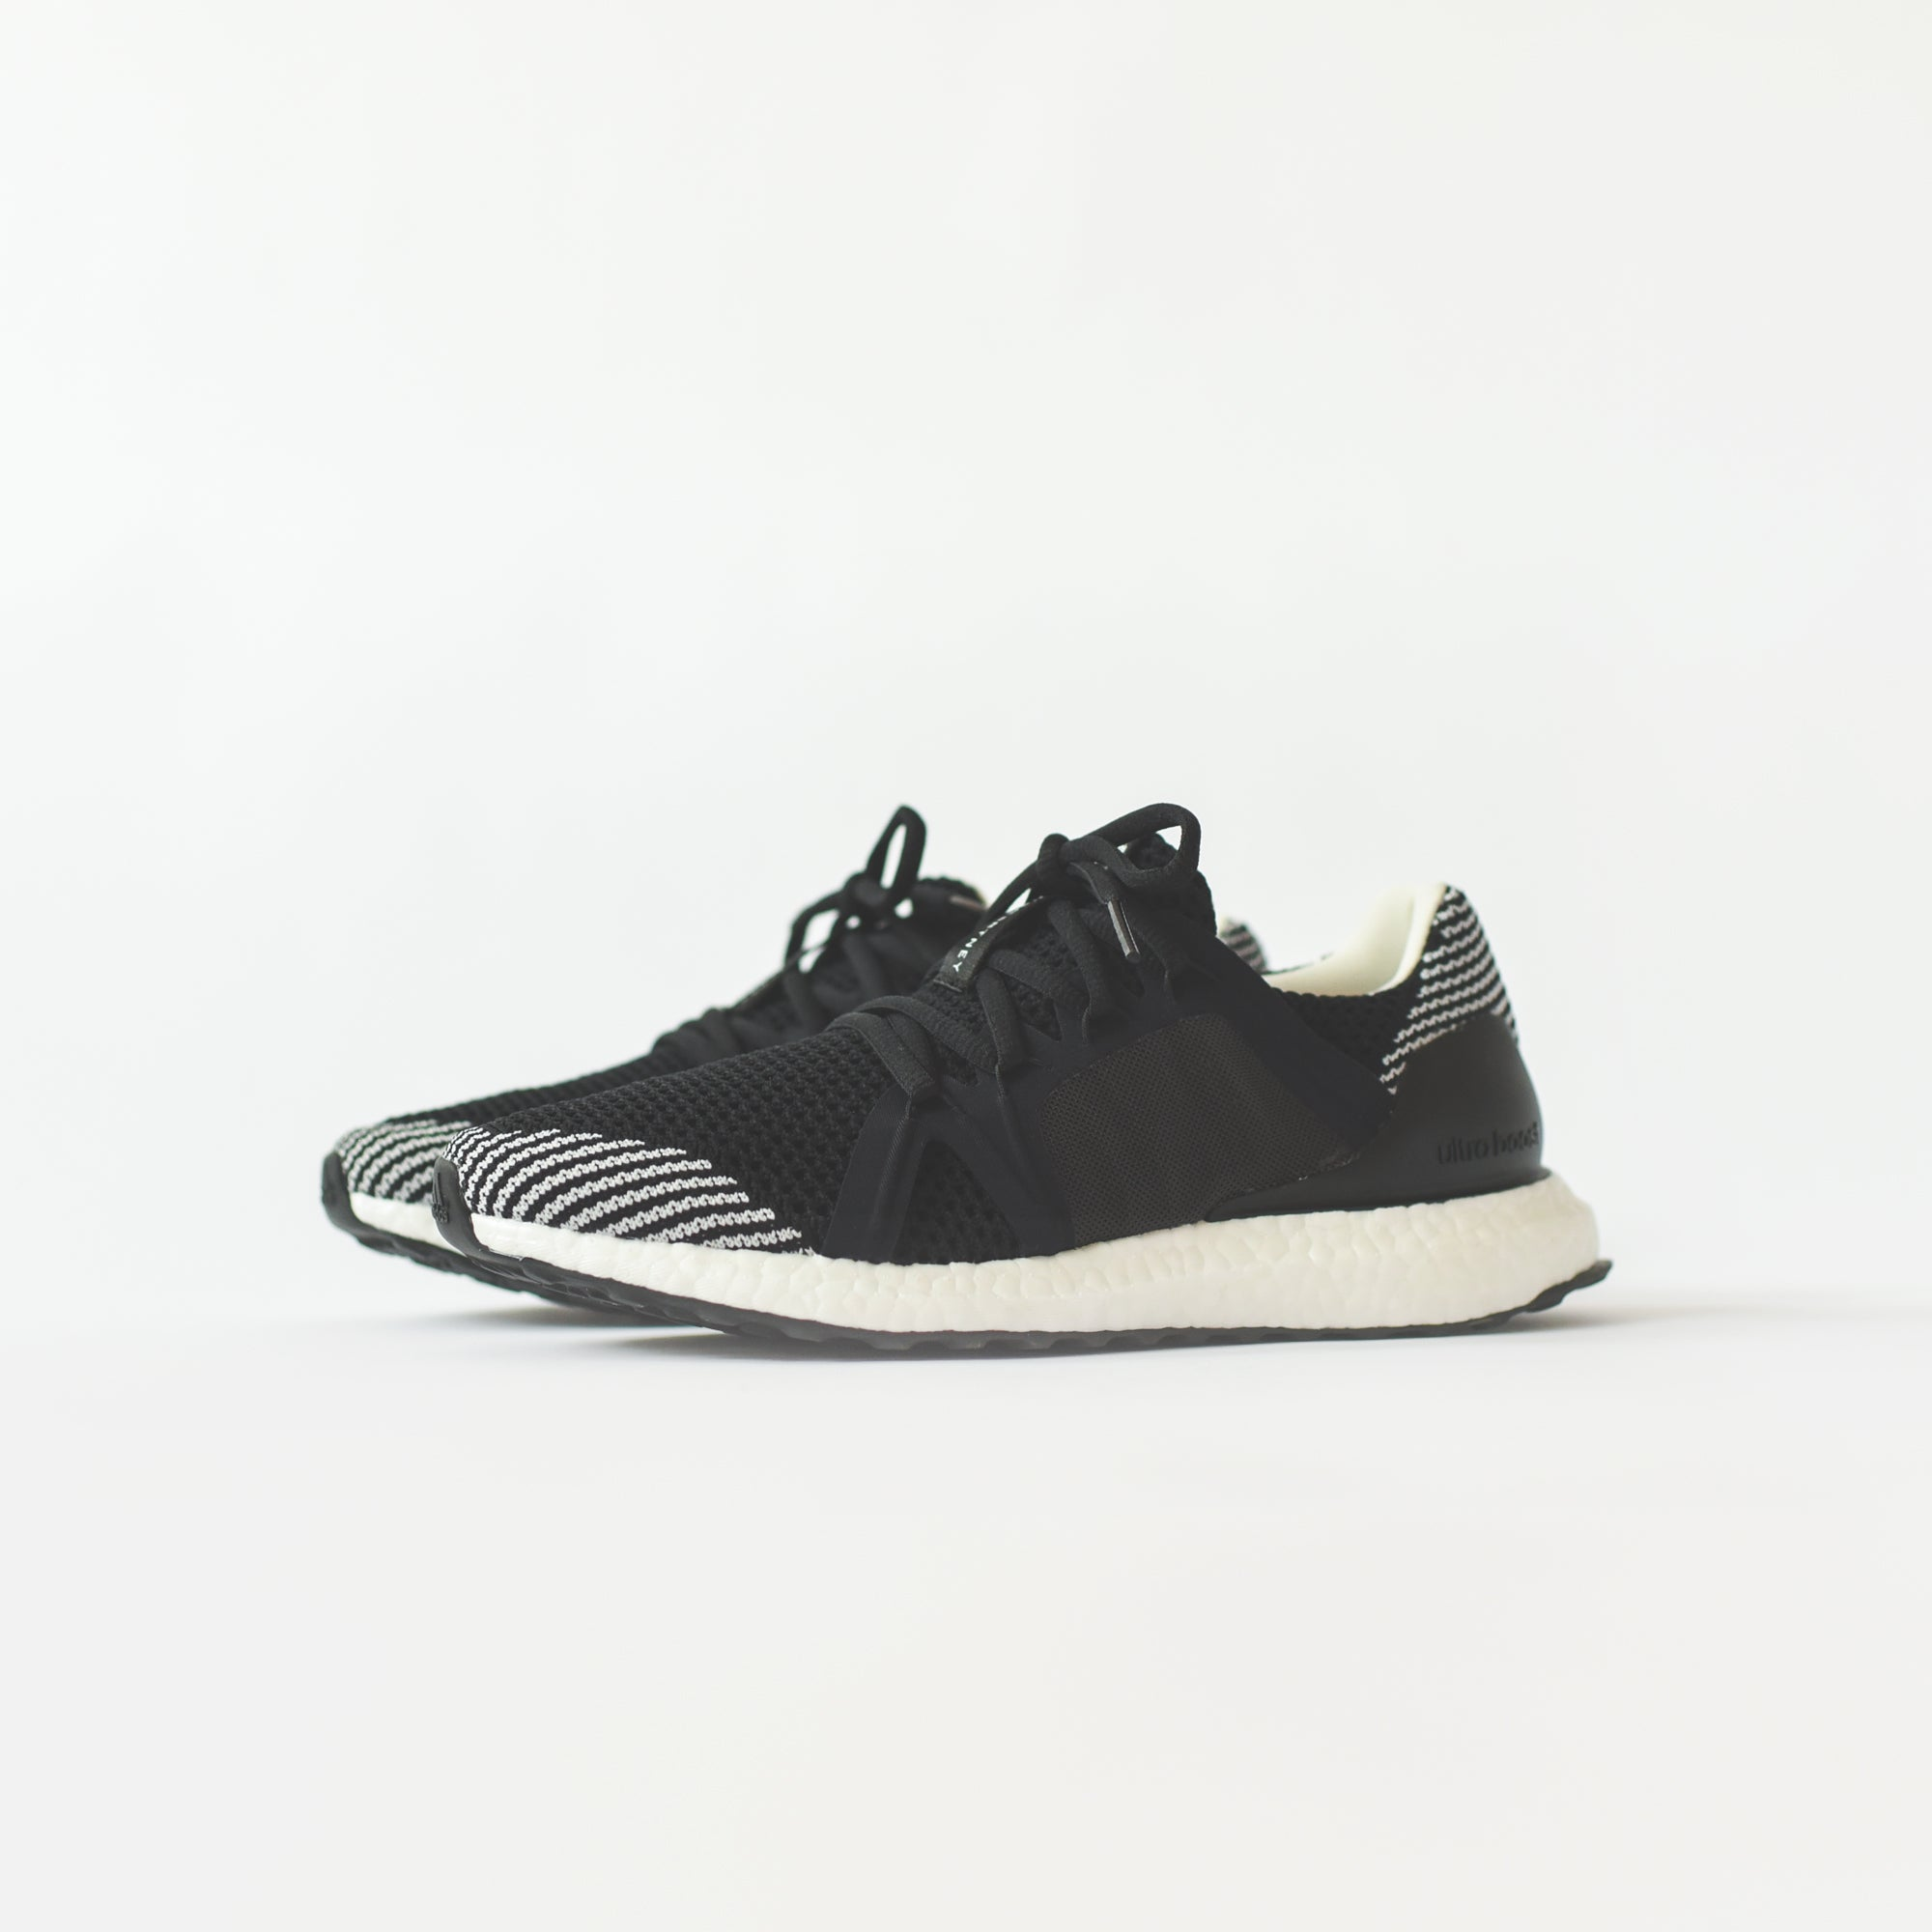 54f5f5b2aeec9 adidas by Stella McCartney WMNS UltraBOOST - Black   White   Granite ...